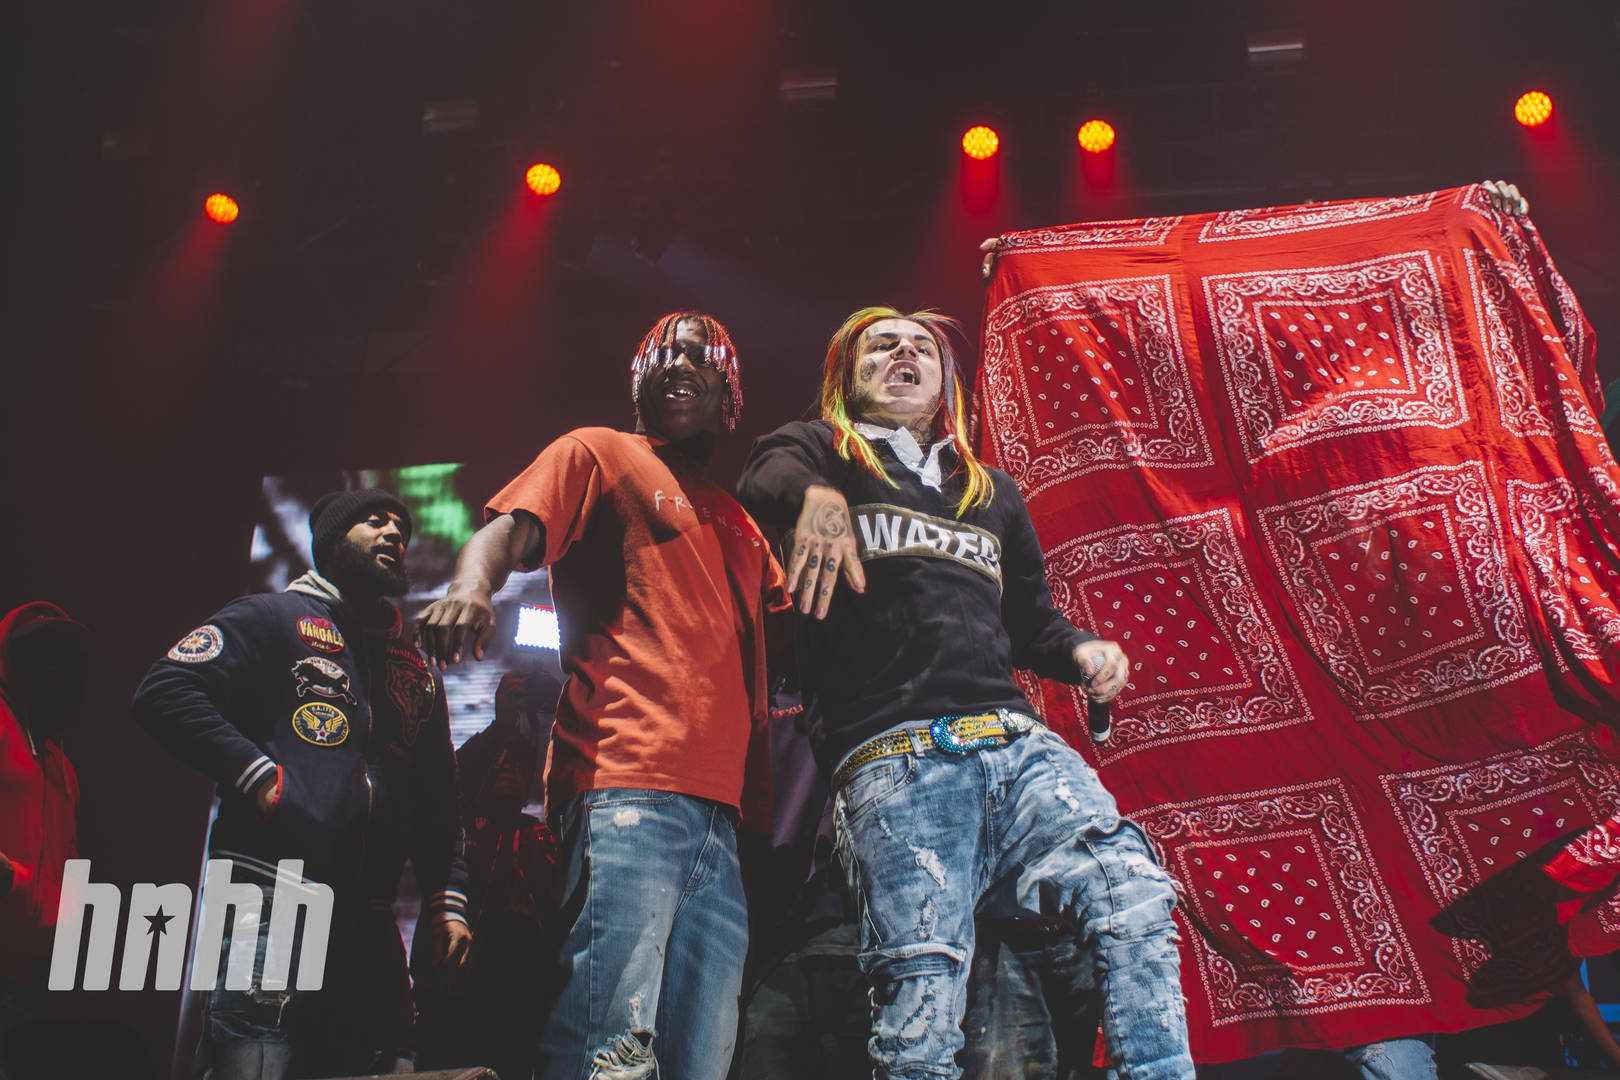 6ix9ine and lil yachty together